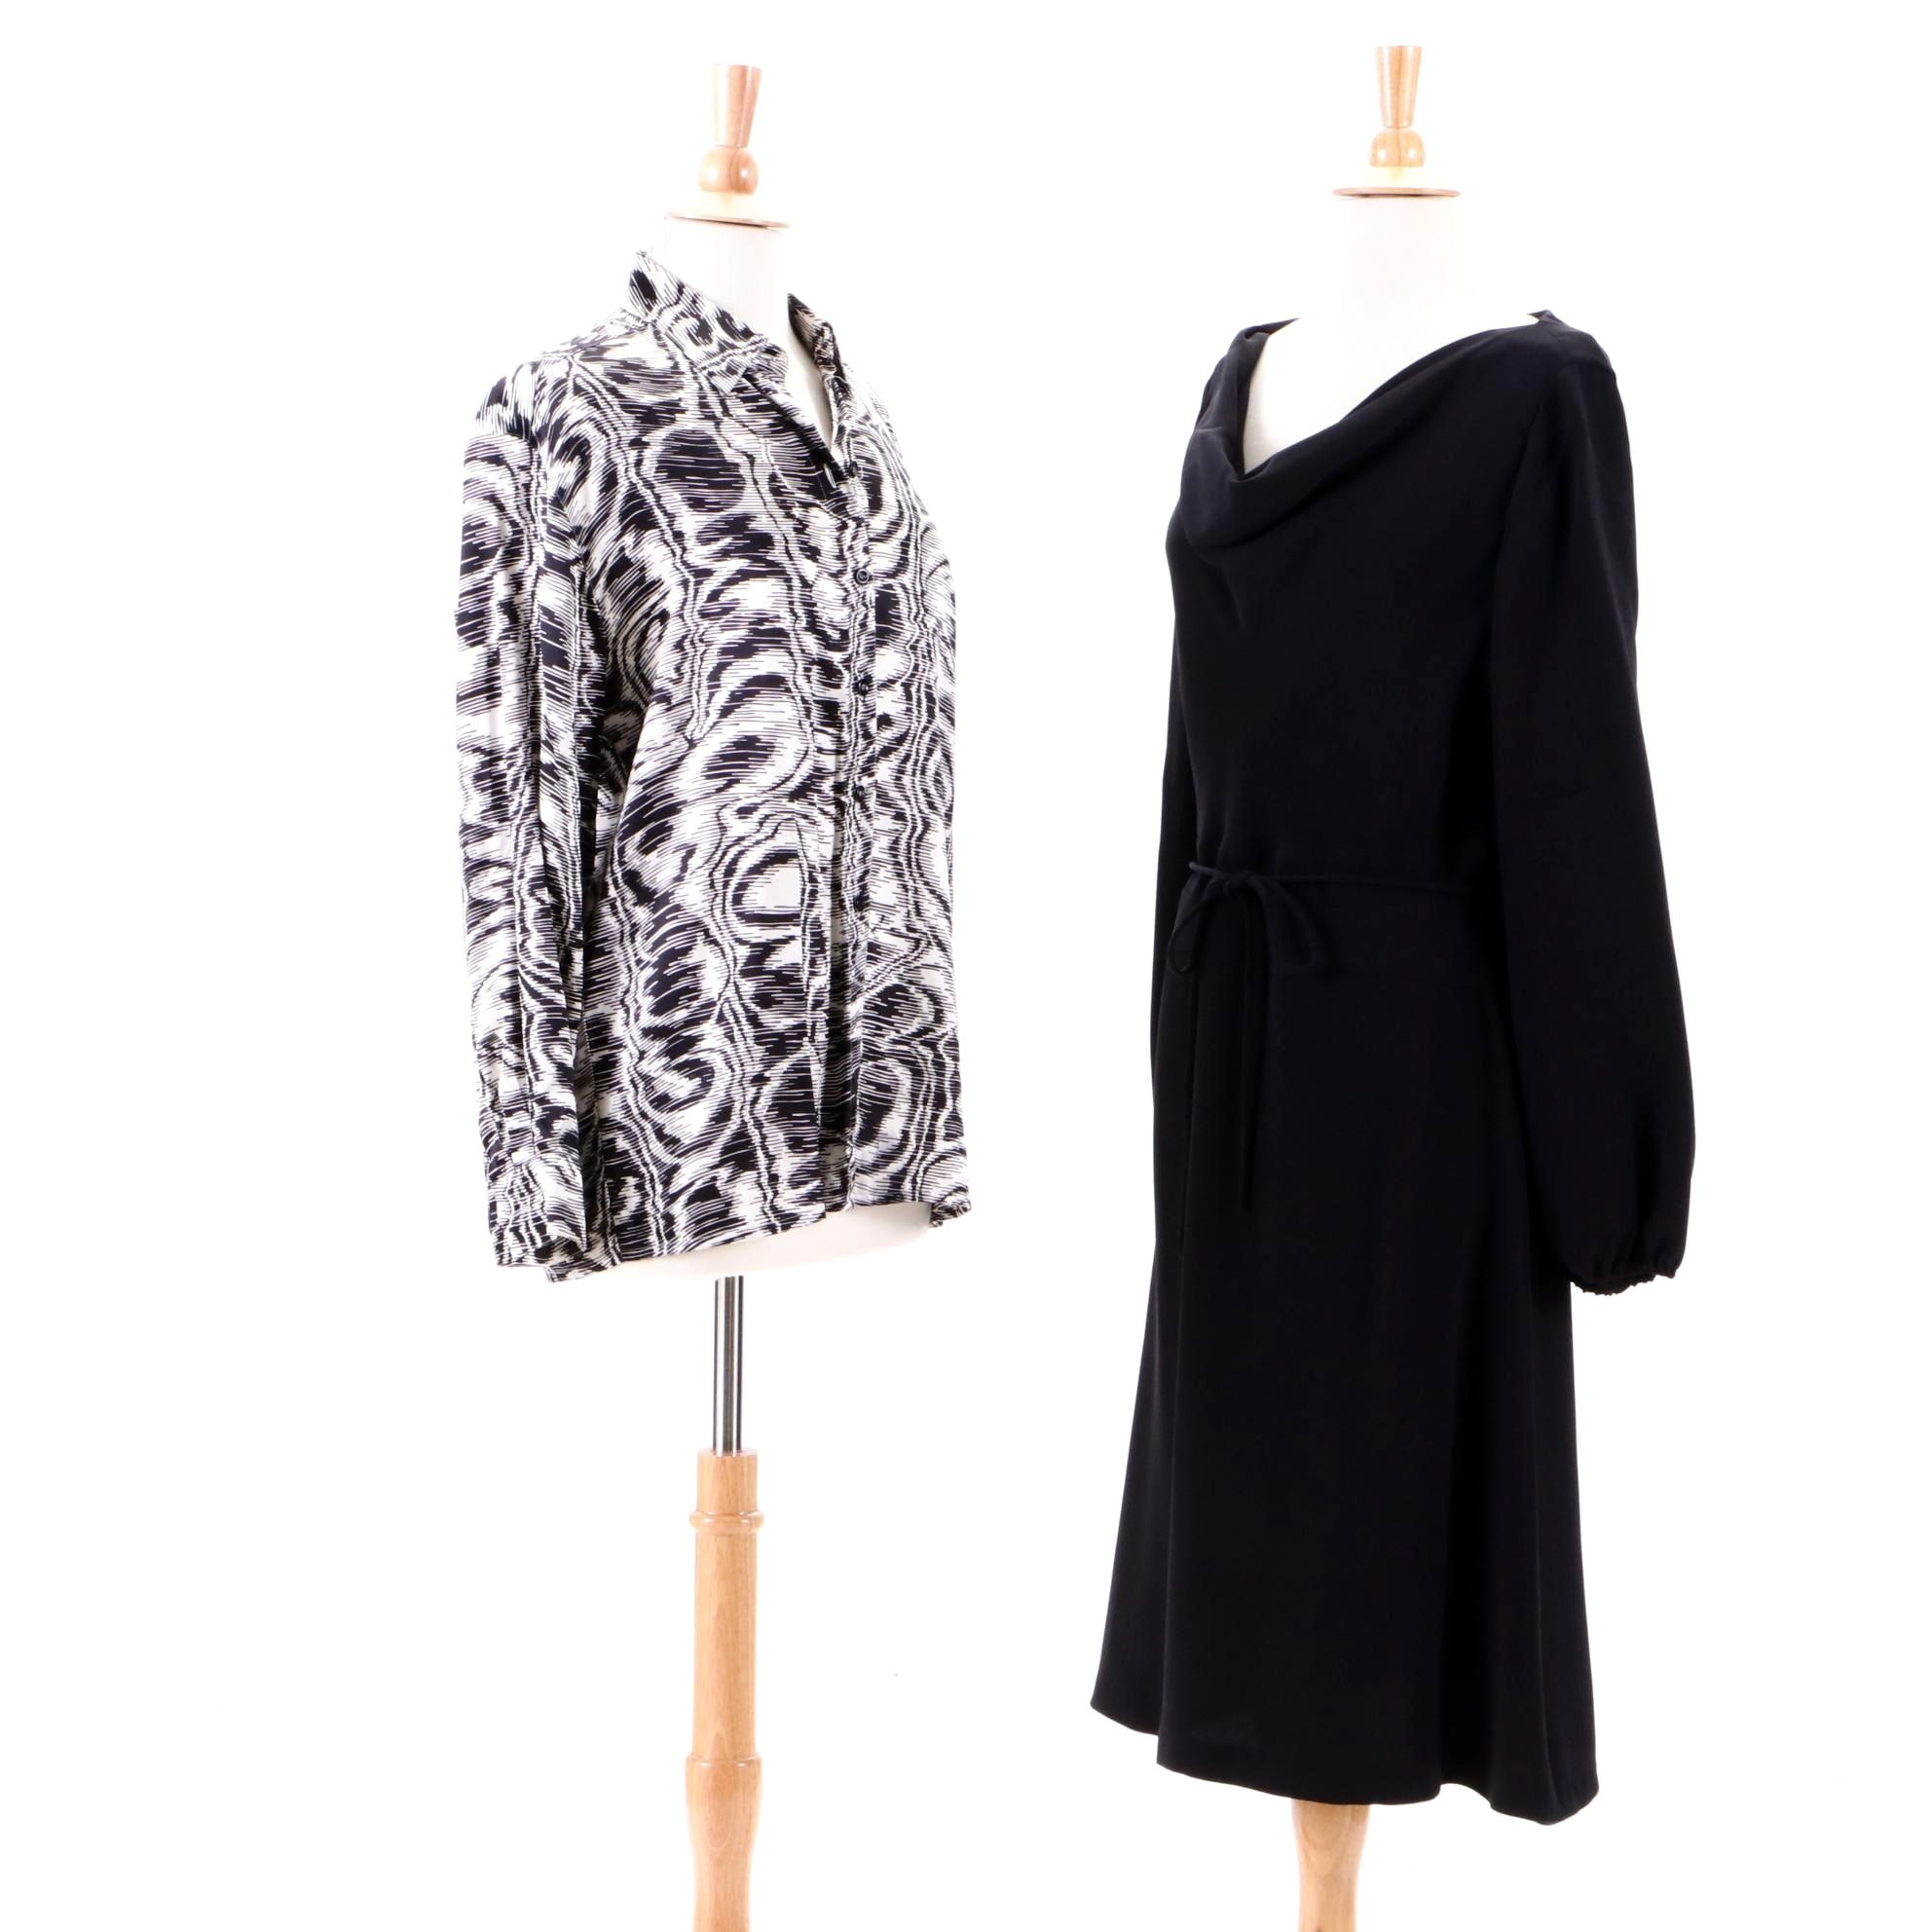 Escada Silk Blouse and Black Dress